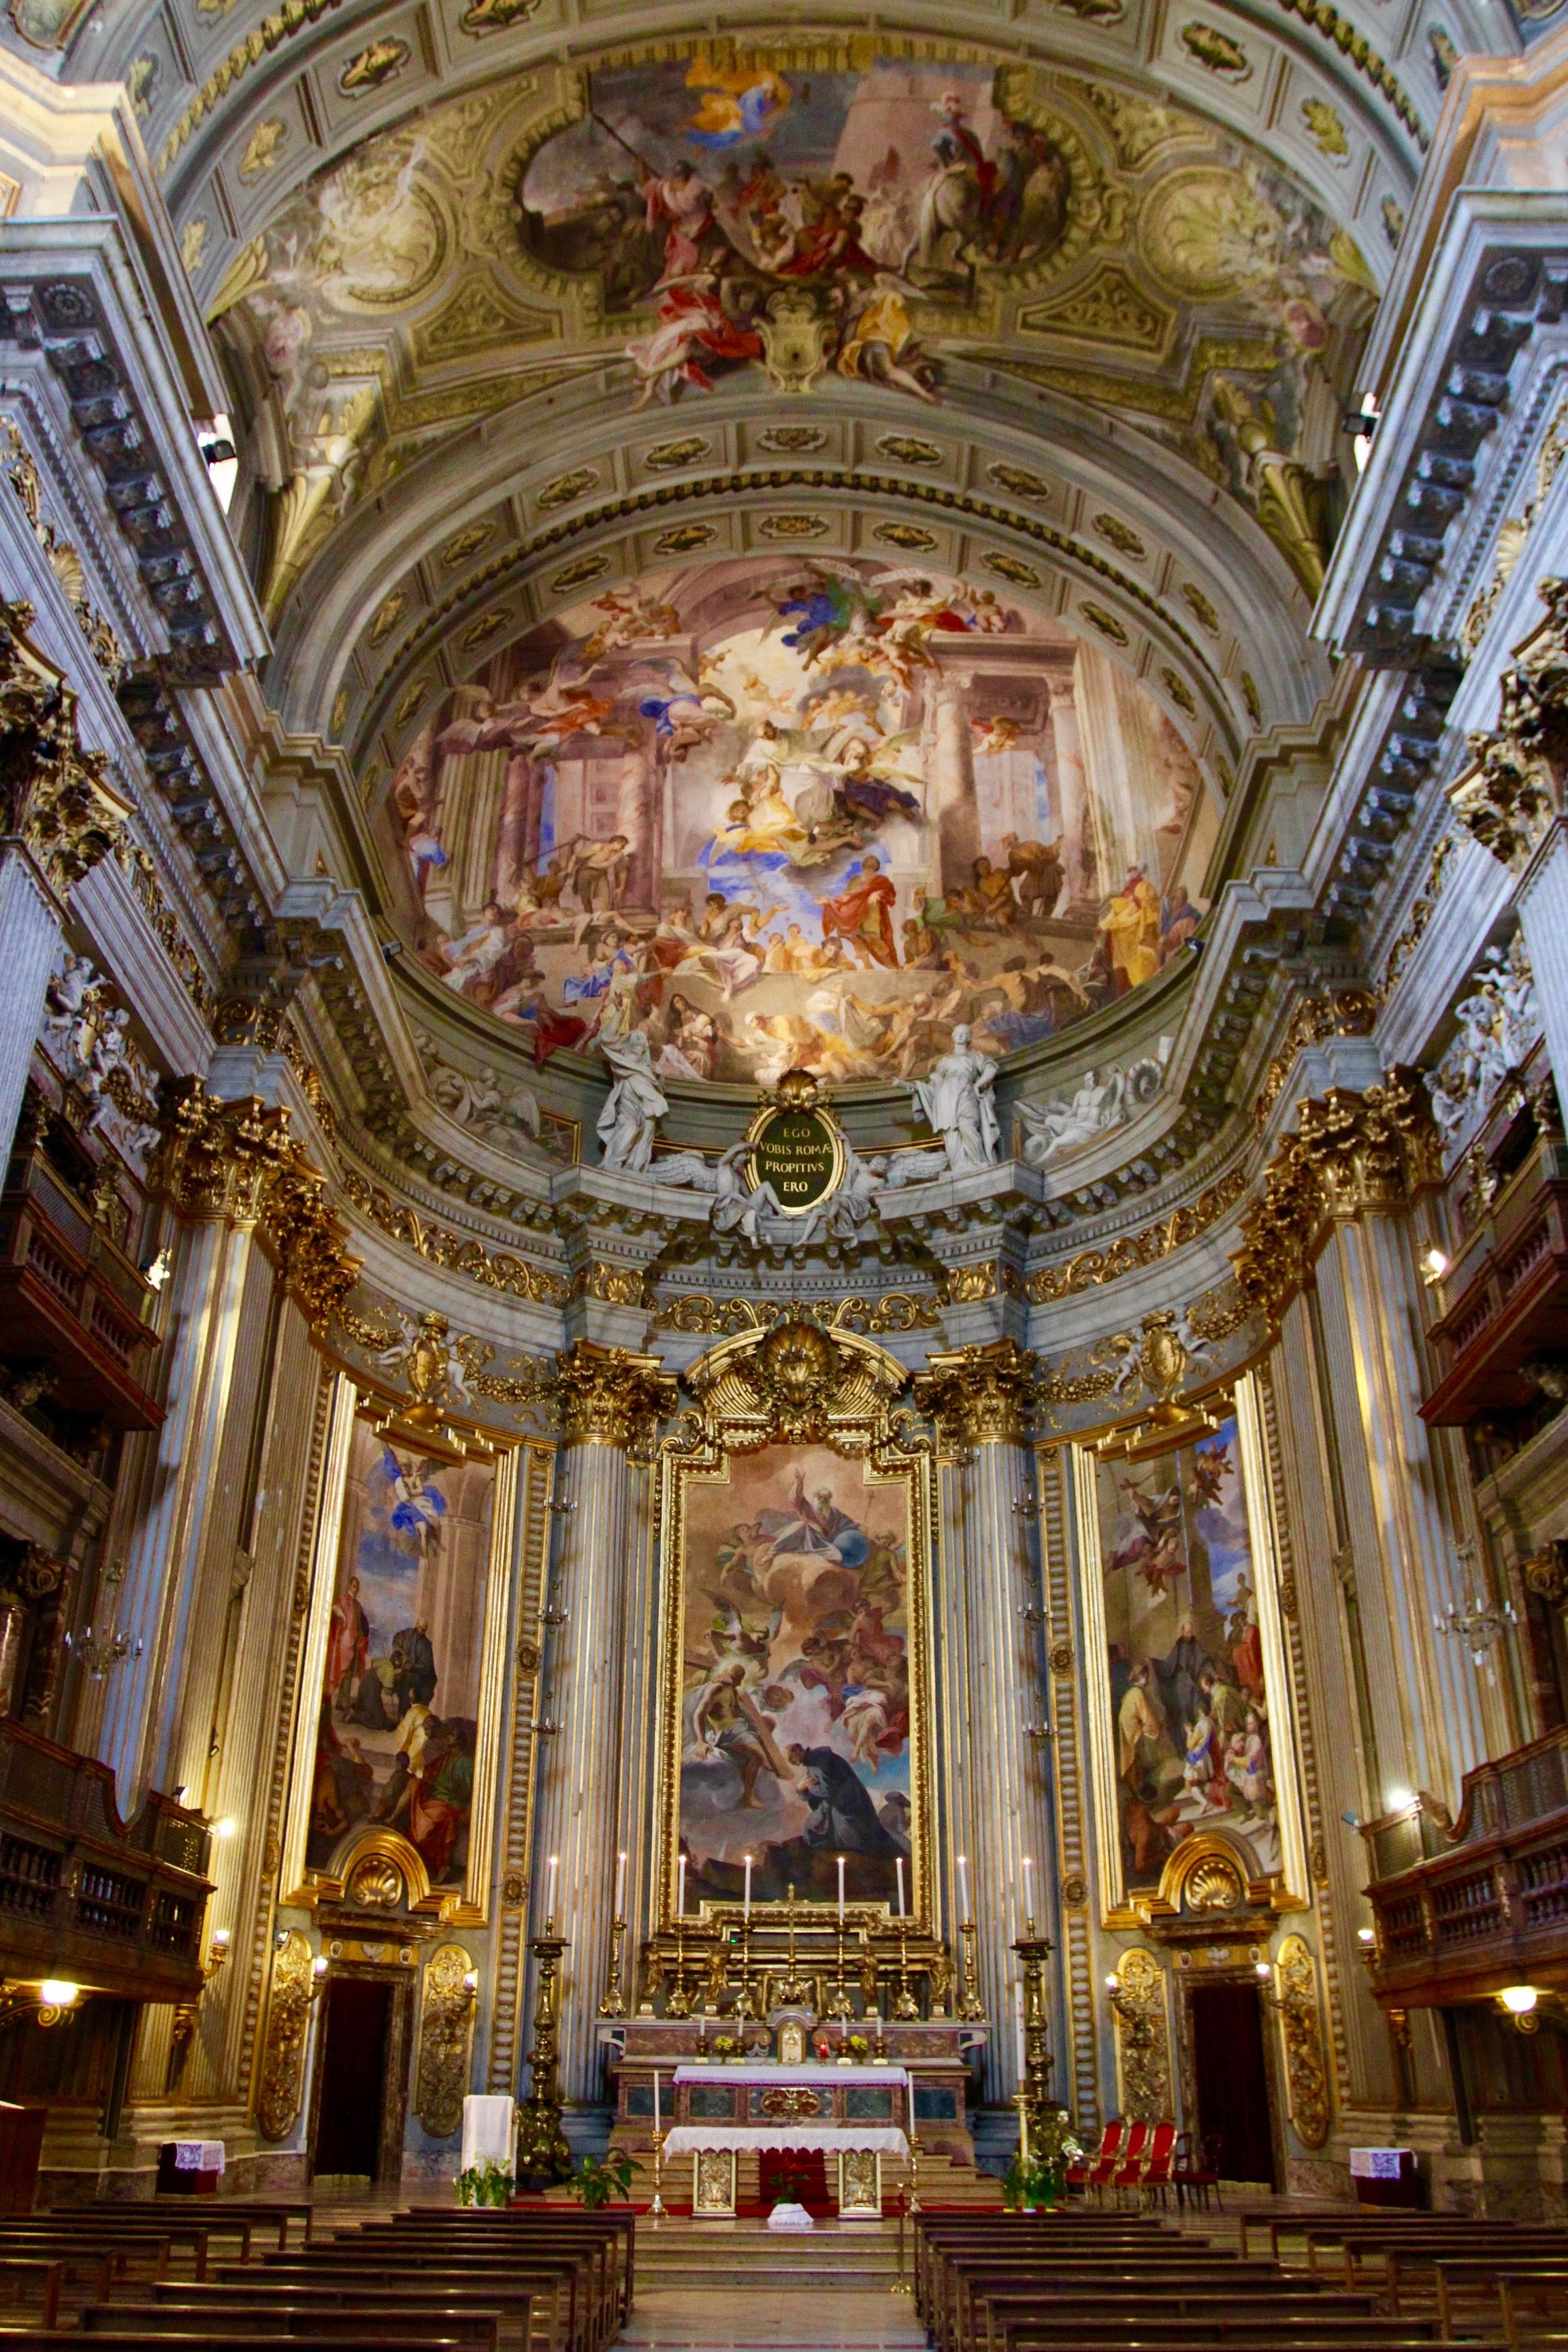 cathedral interior in italy | Church interior, Rome Italy | notesfromcamelidcountry